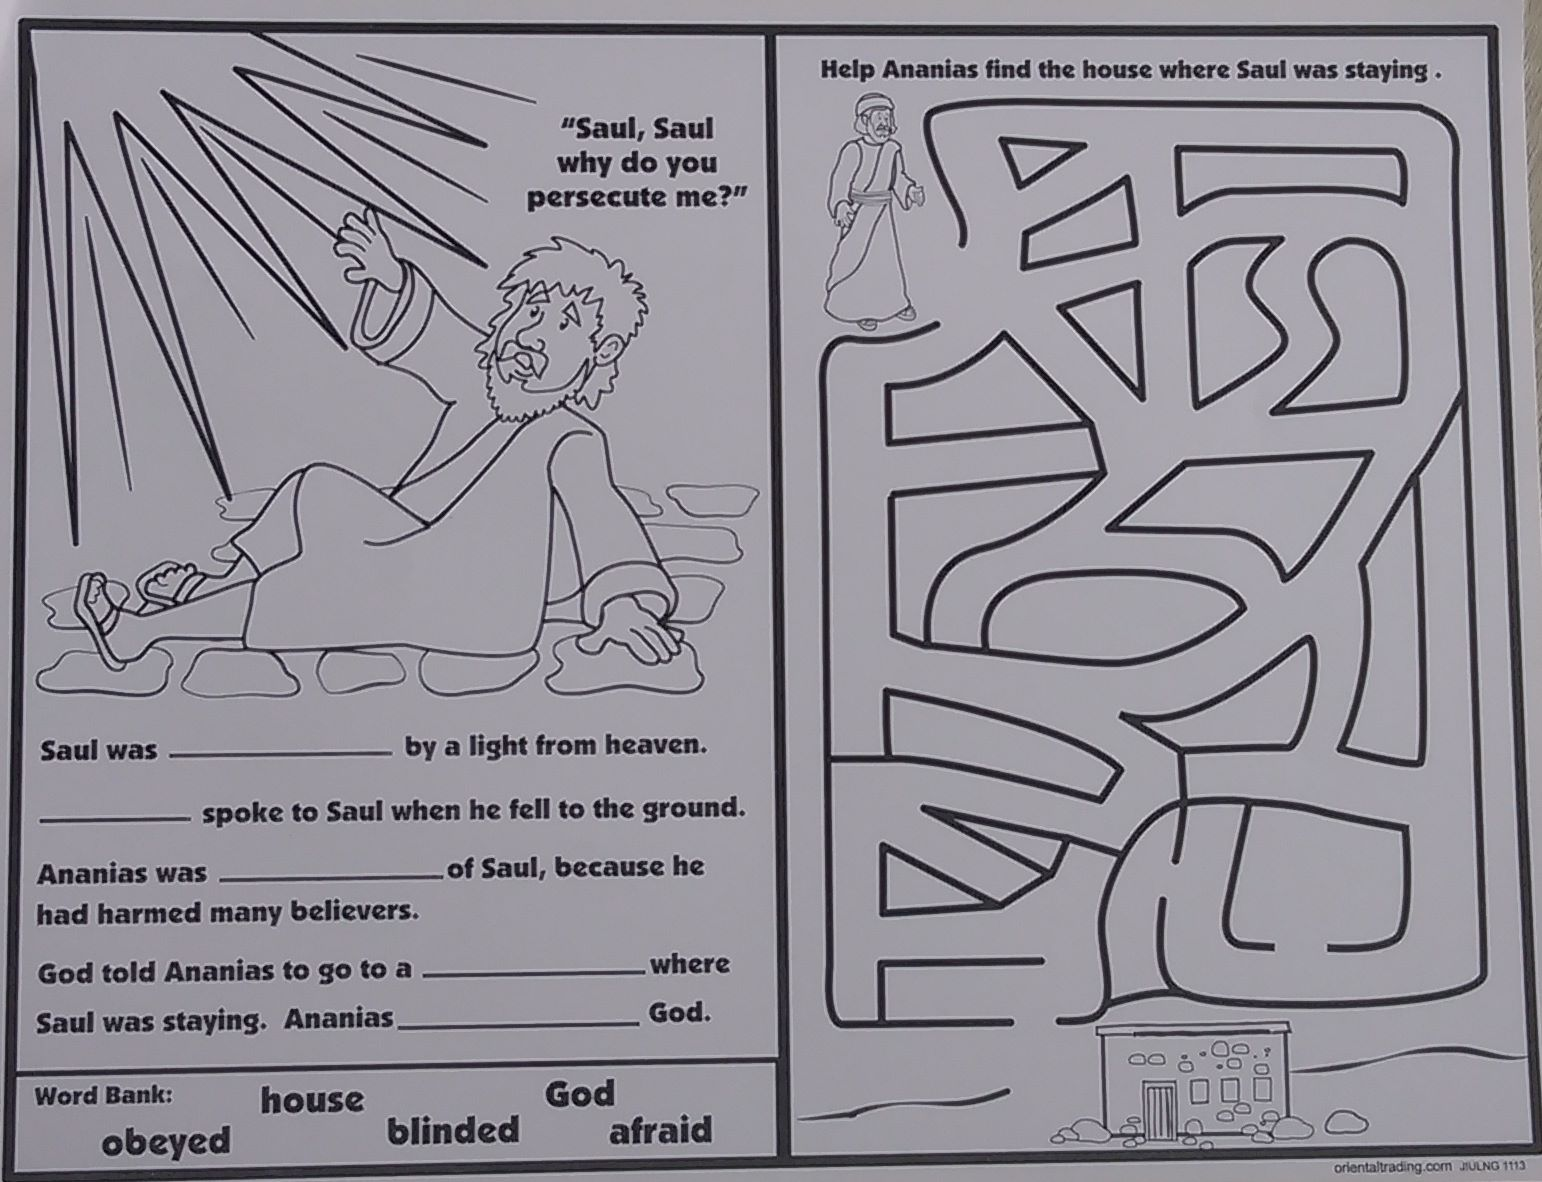 Childrens coloring sheet of saul and ananias - Ananias Helps Saul Activity Sheet Assorted Activities 1 Page Size 280 X 216mm Oriental Trading Company Bible Version Not Kjv